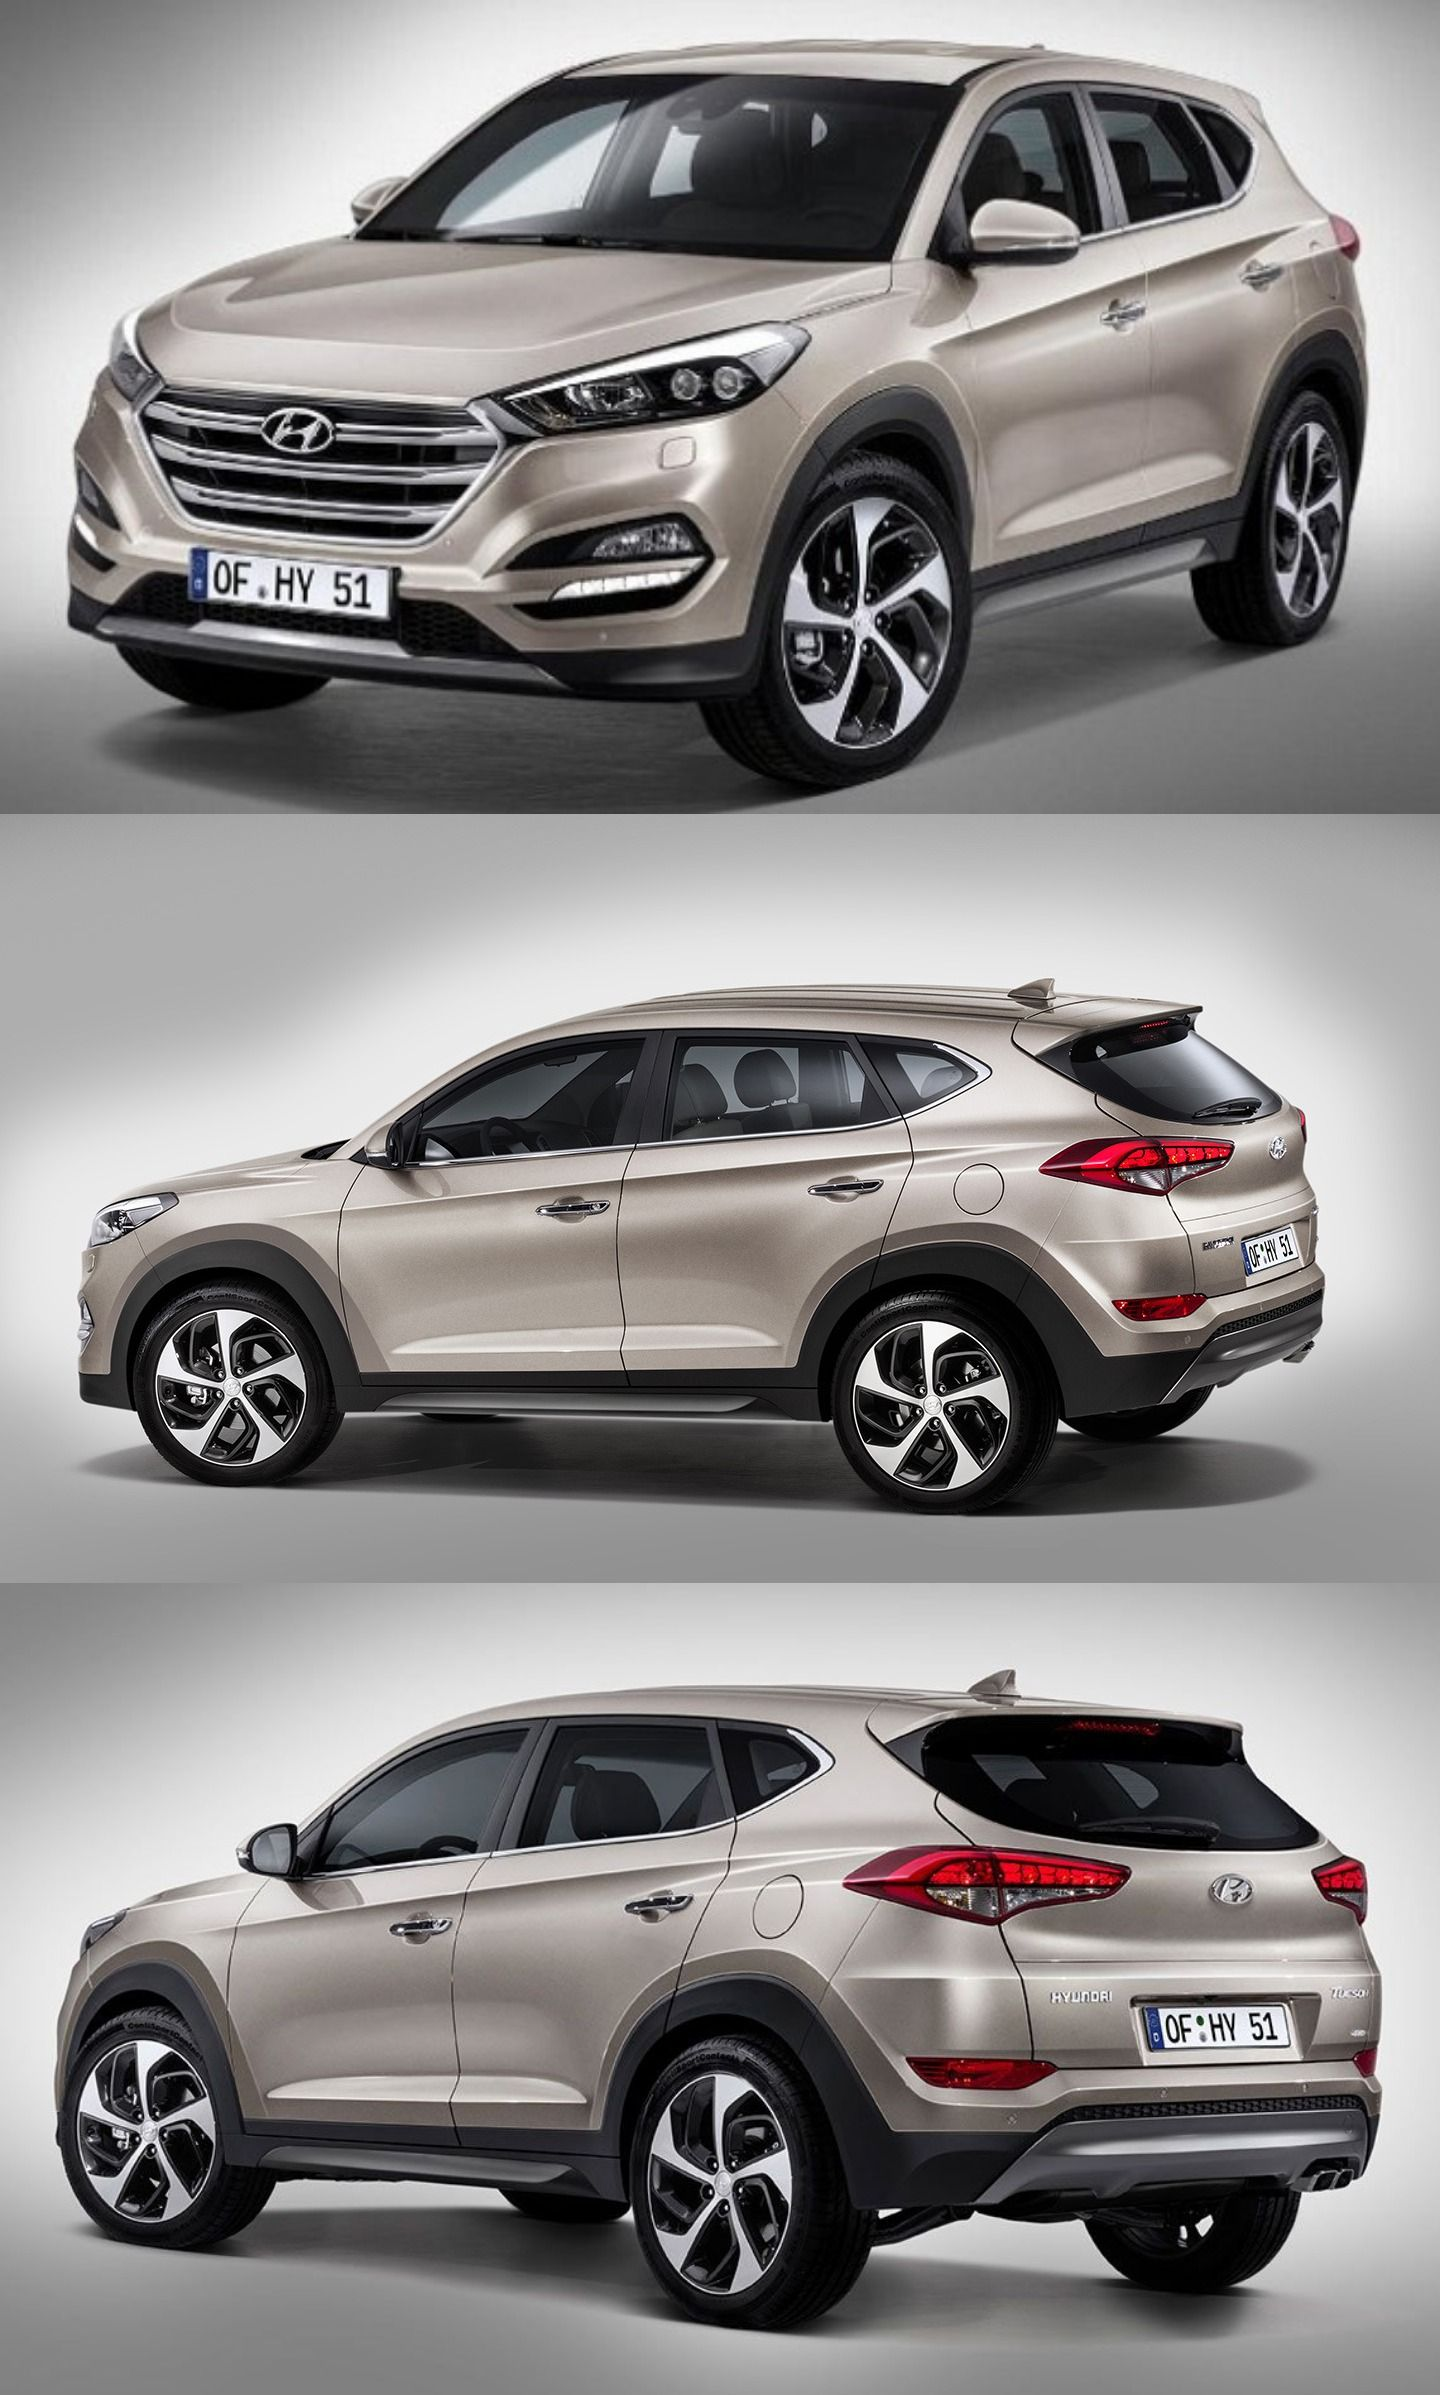 New Hyundai Tucson Unveiled In The Uk Hyundai Suv Suv Cars Best Midsize Suv